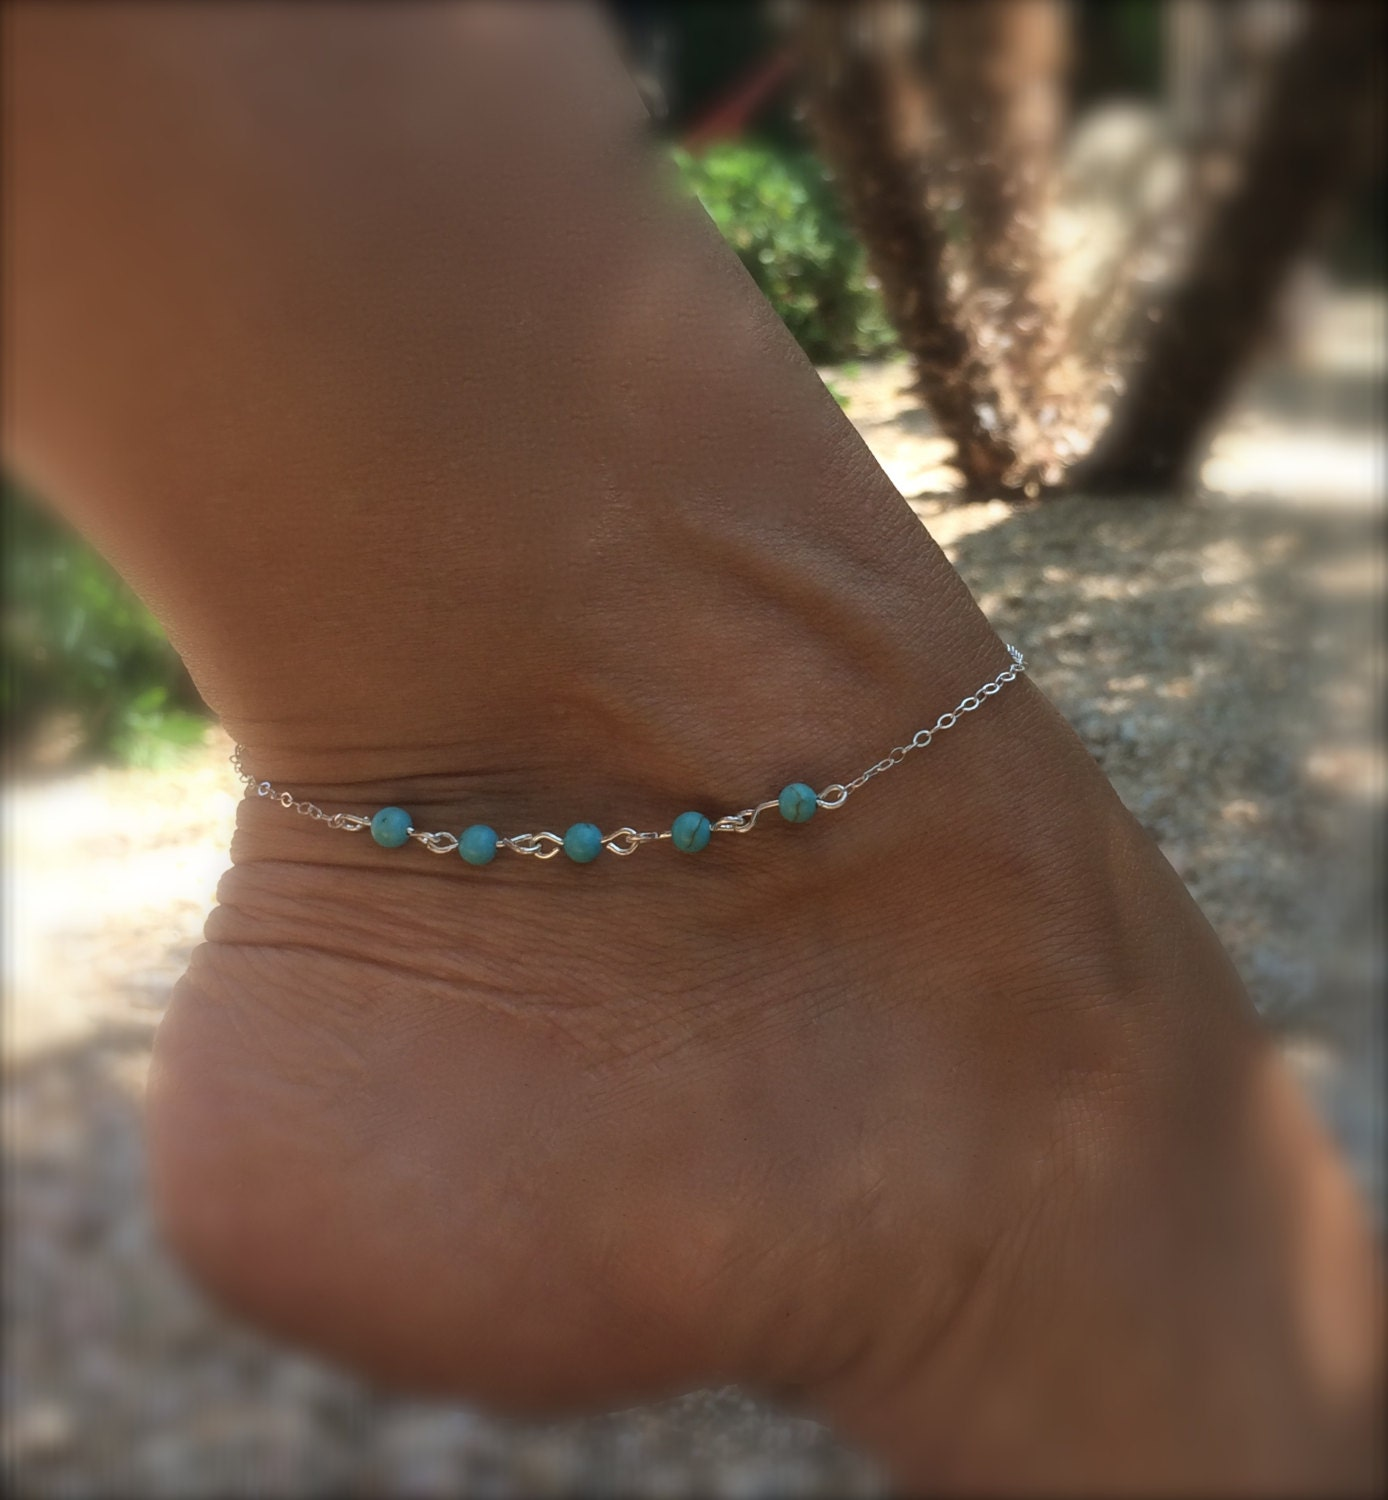 ankle bracelets com anklet fashion anklets from bracelet femininas store product for aliexpress chain tornozeleira women foot silver sterling reliable buy